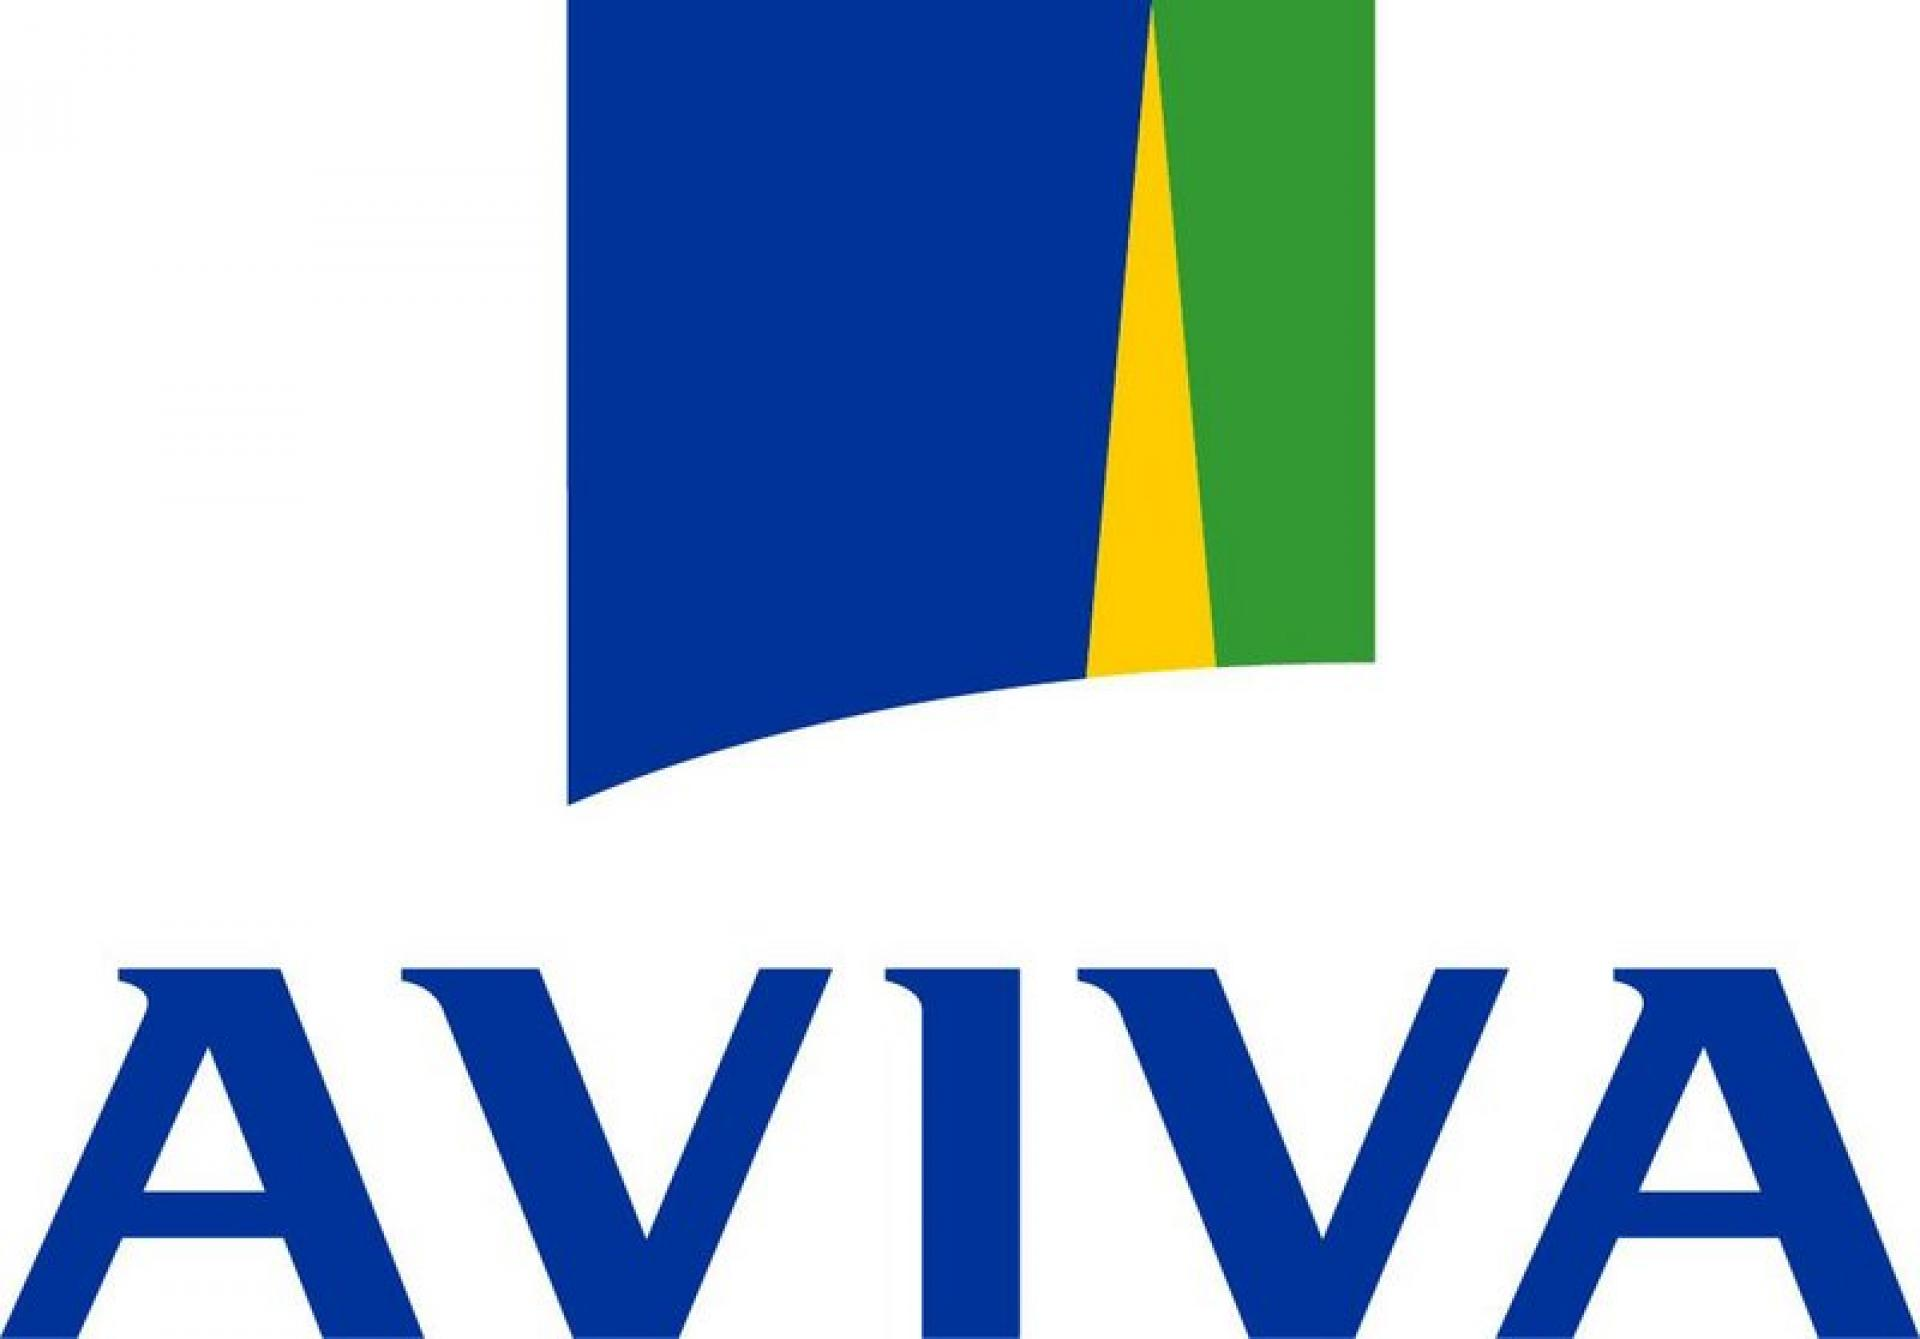 Aviva's Summer BBQ Fun Day